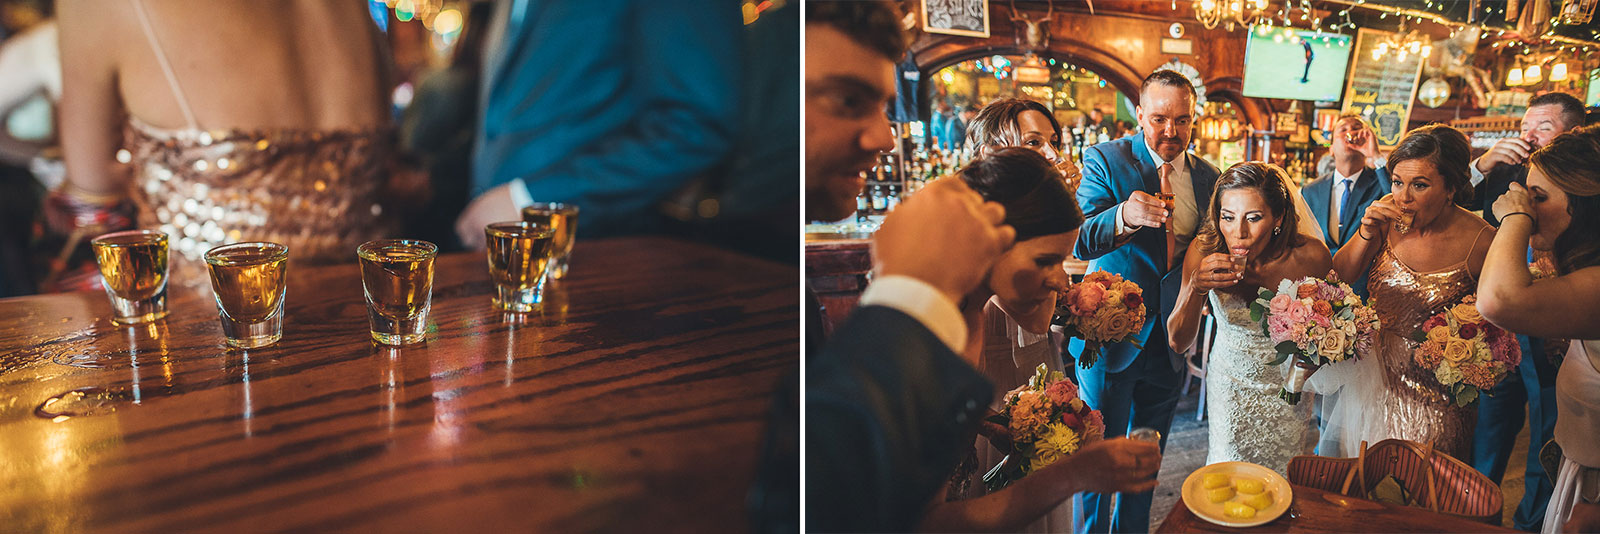 21 shots - Natalie + Alan // Chicago Wedding Photographer at Cafe Brauer